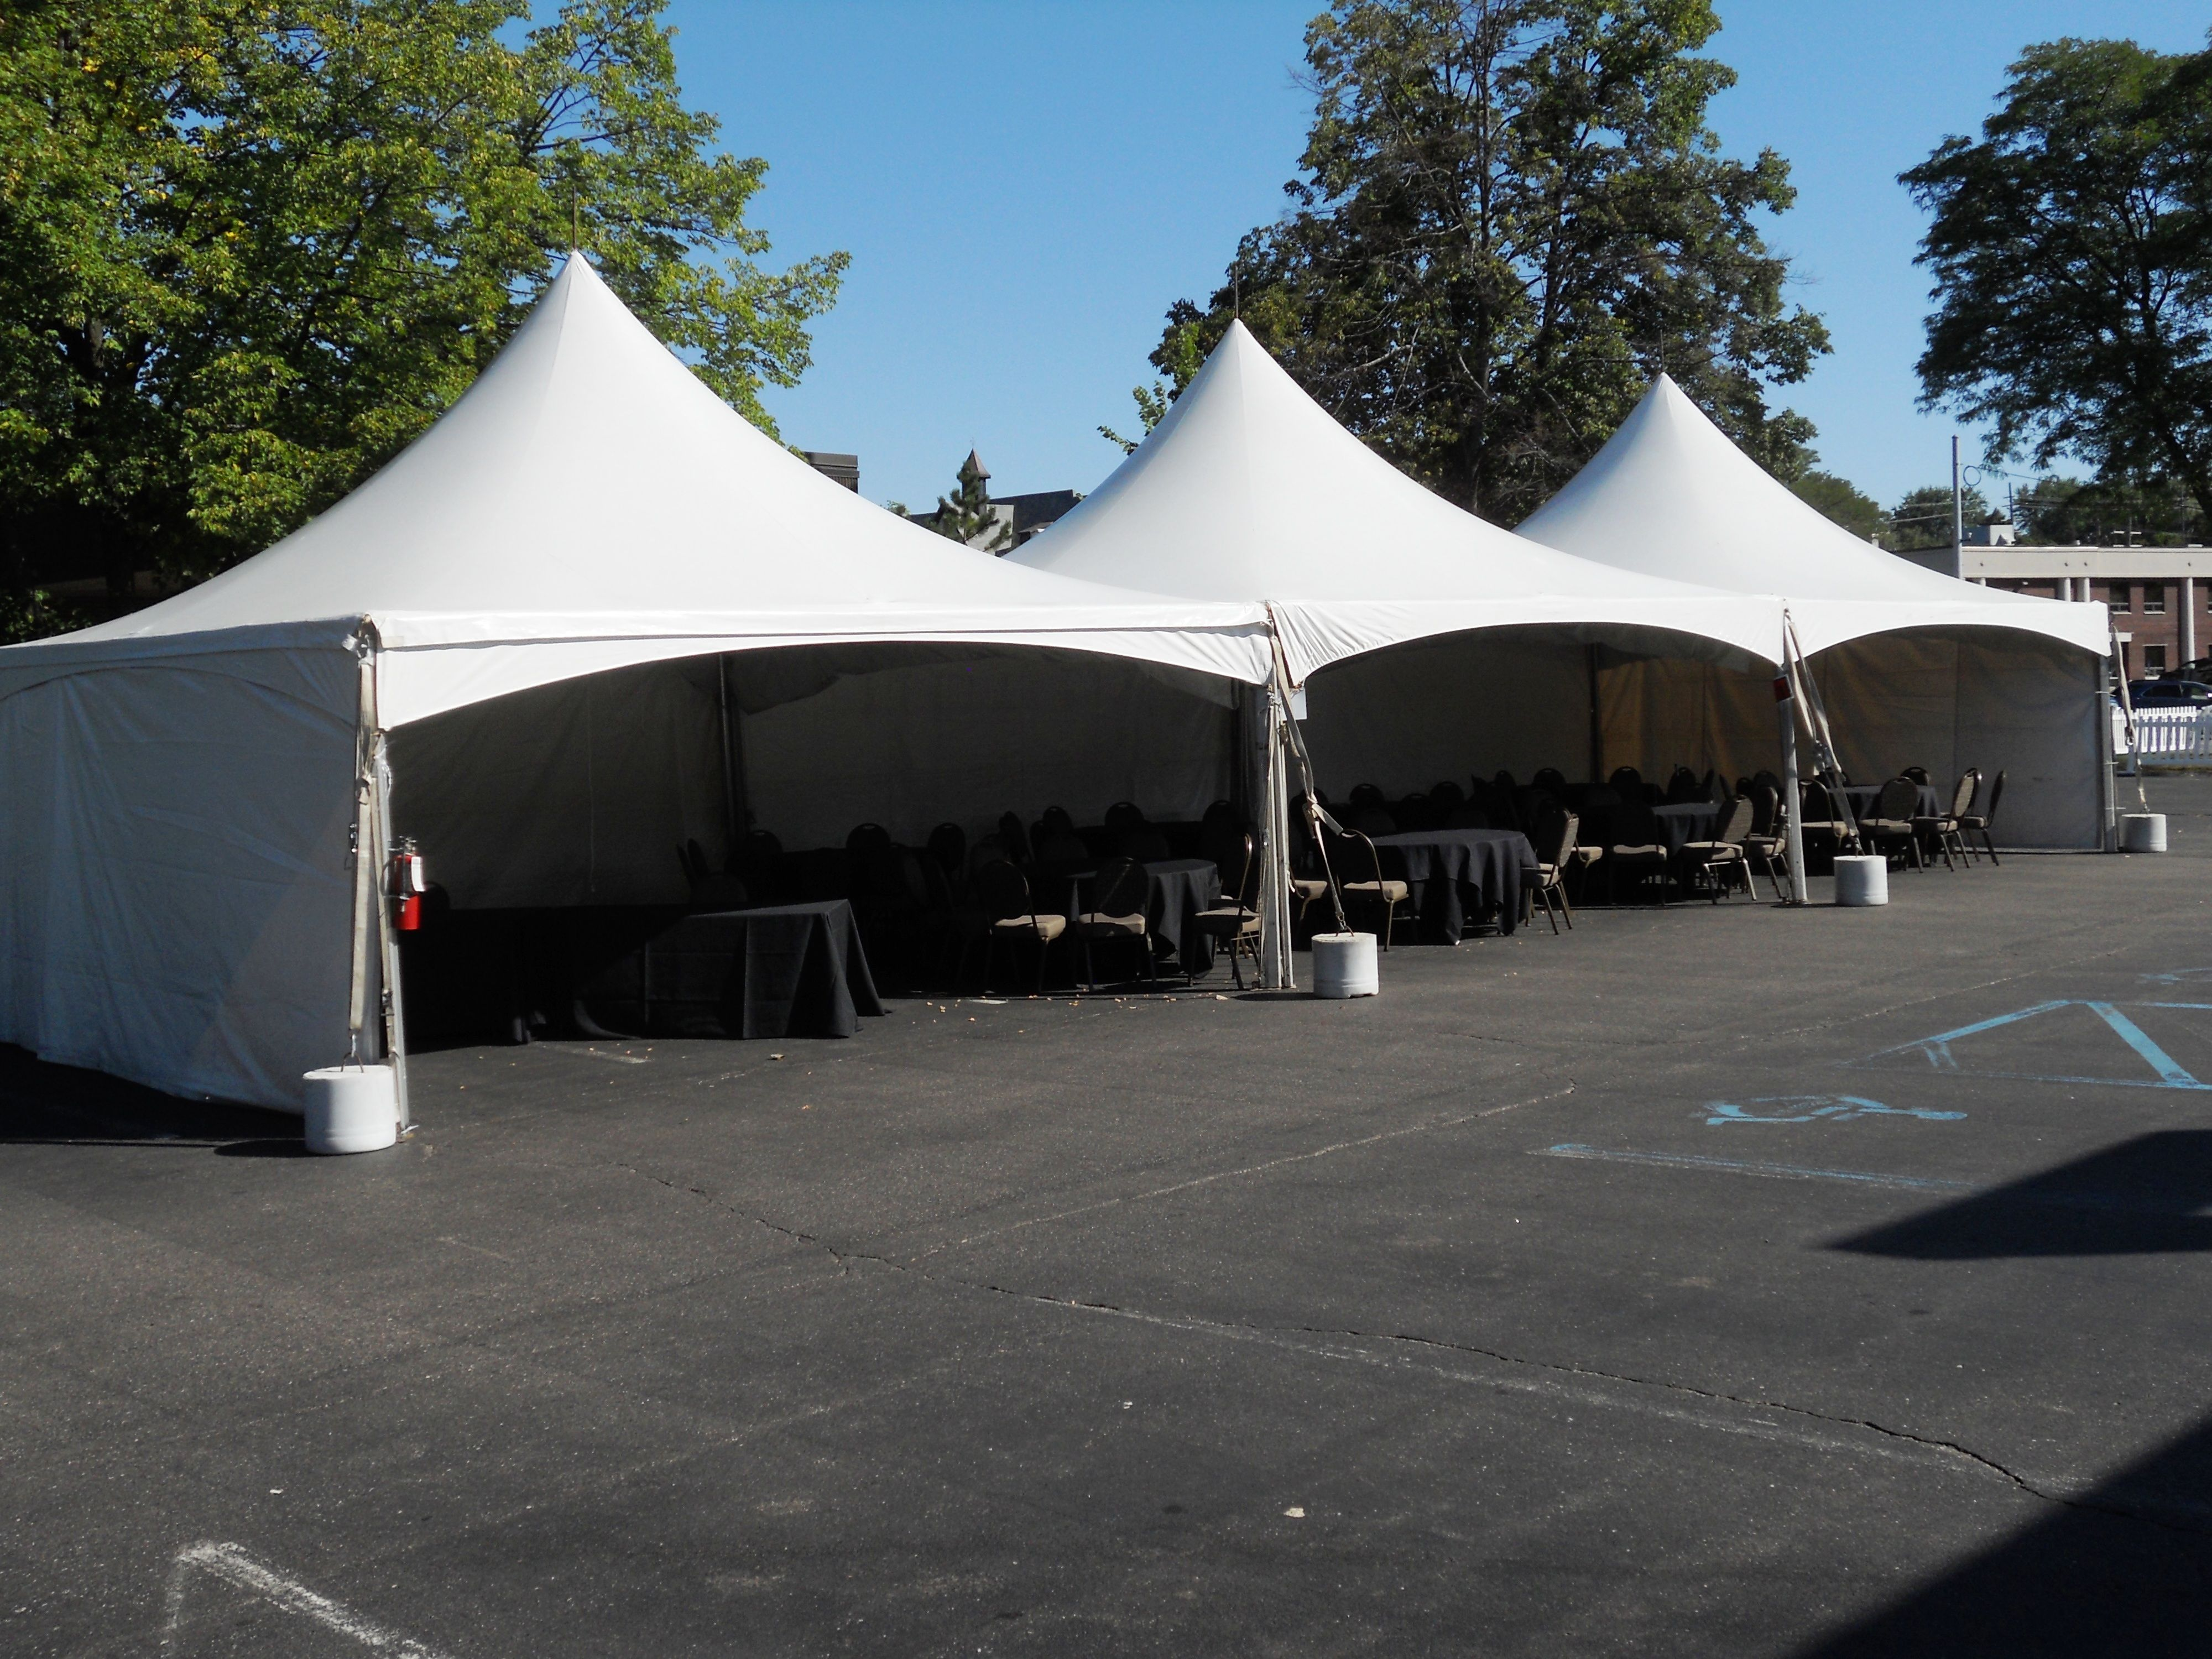 3 20 x 20 festival frame tents for Woodward Cruise event. Perfect configuration for street festivals fairs and corporate events. & 3 20 x 20 festival frame tents for Woodward Cruise event. Perfect ...